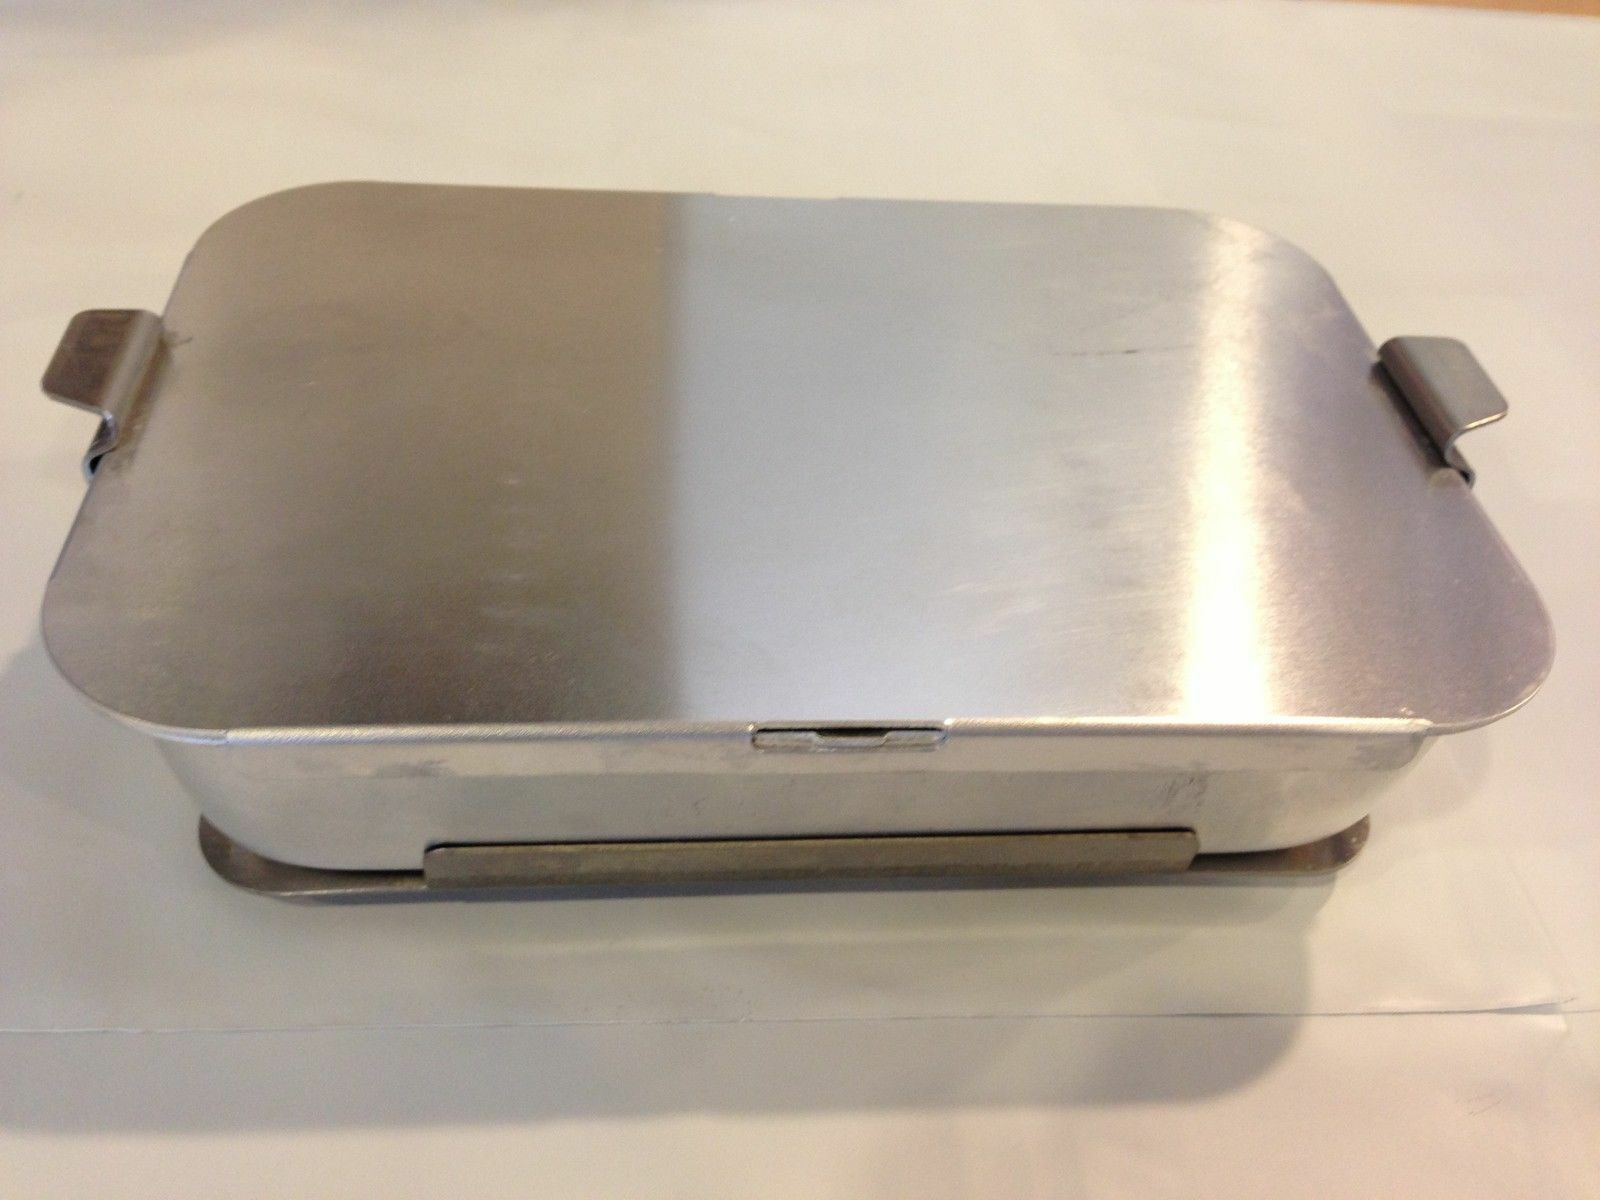 Cooker For Snowmobile ~ Hotdogger iv food warmer under hood exhaust cooker